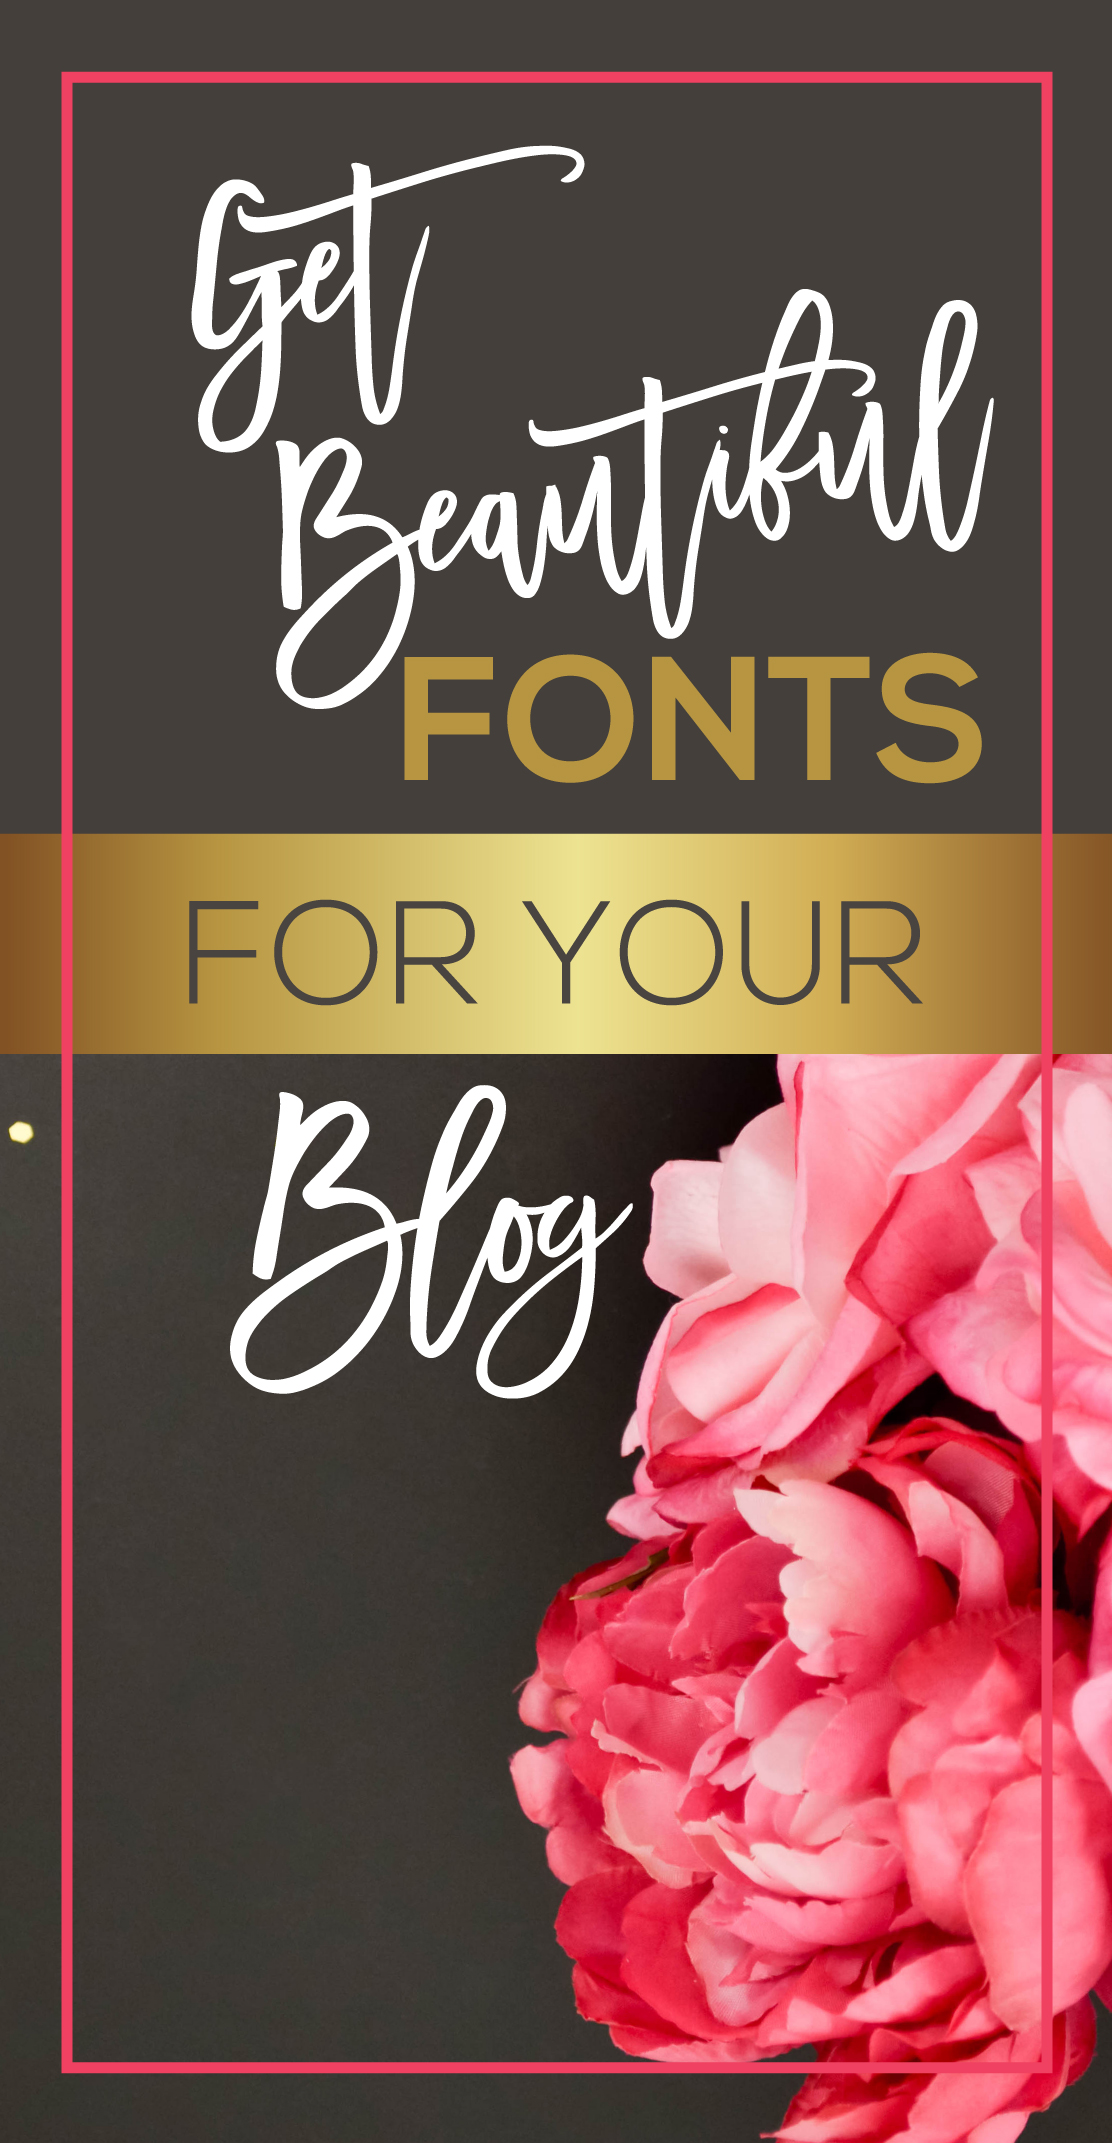 Get Beautiful Fonts for your Blog